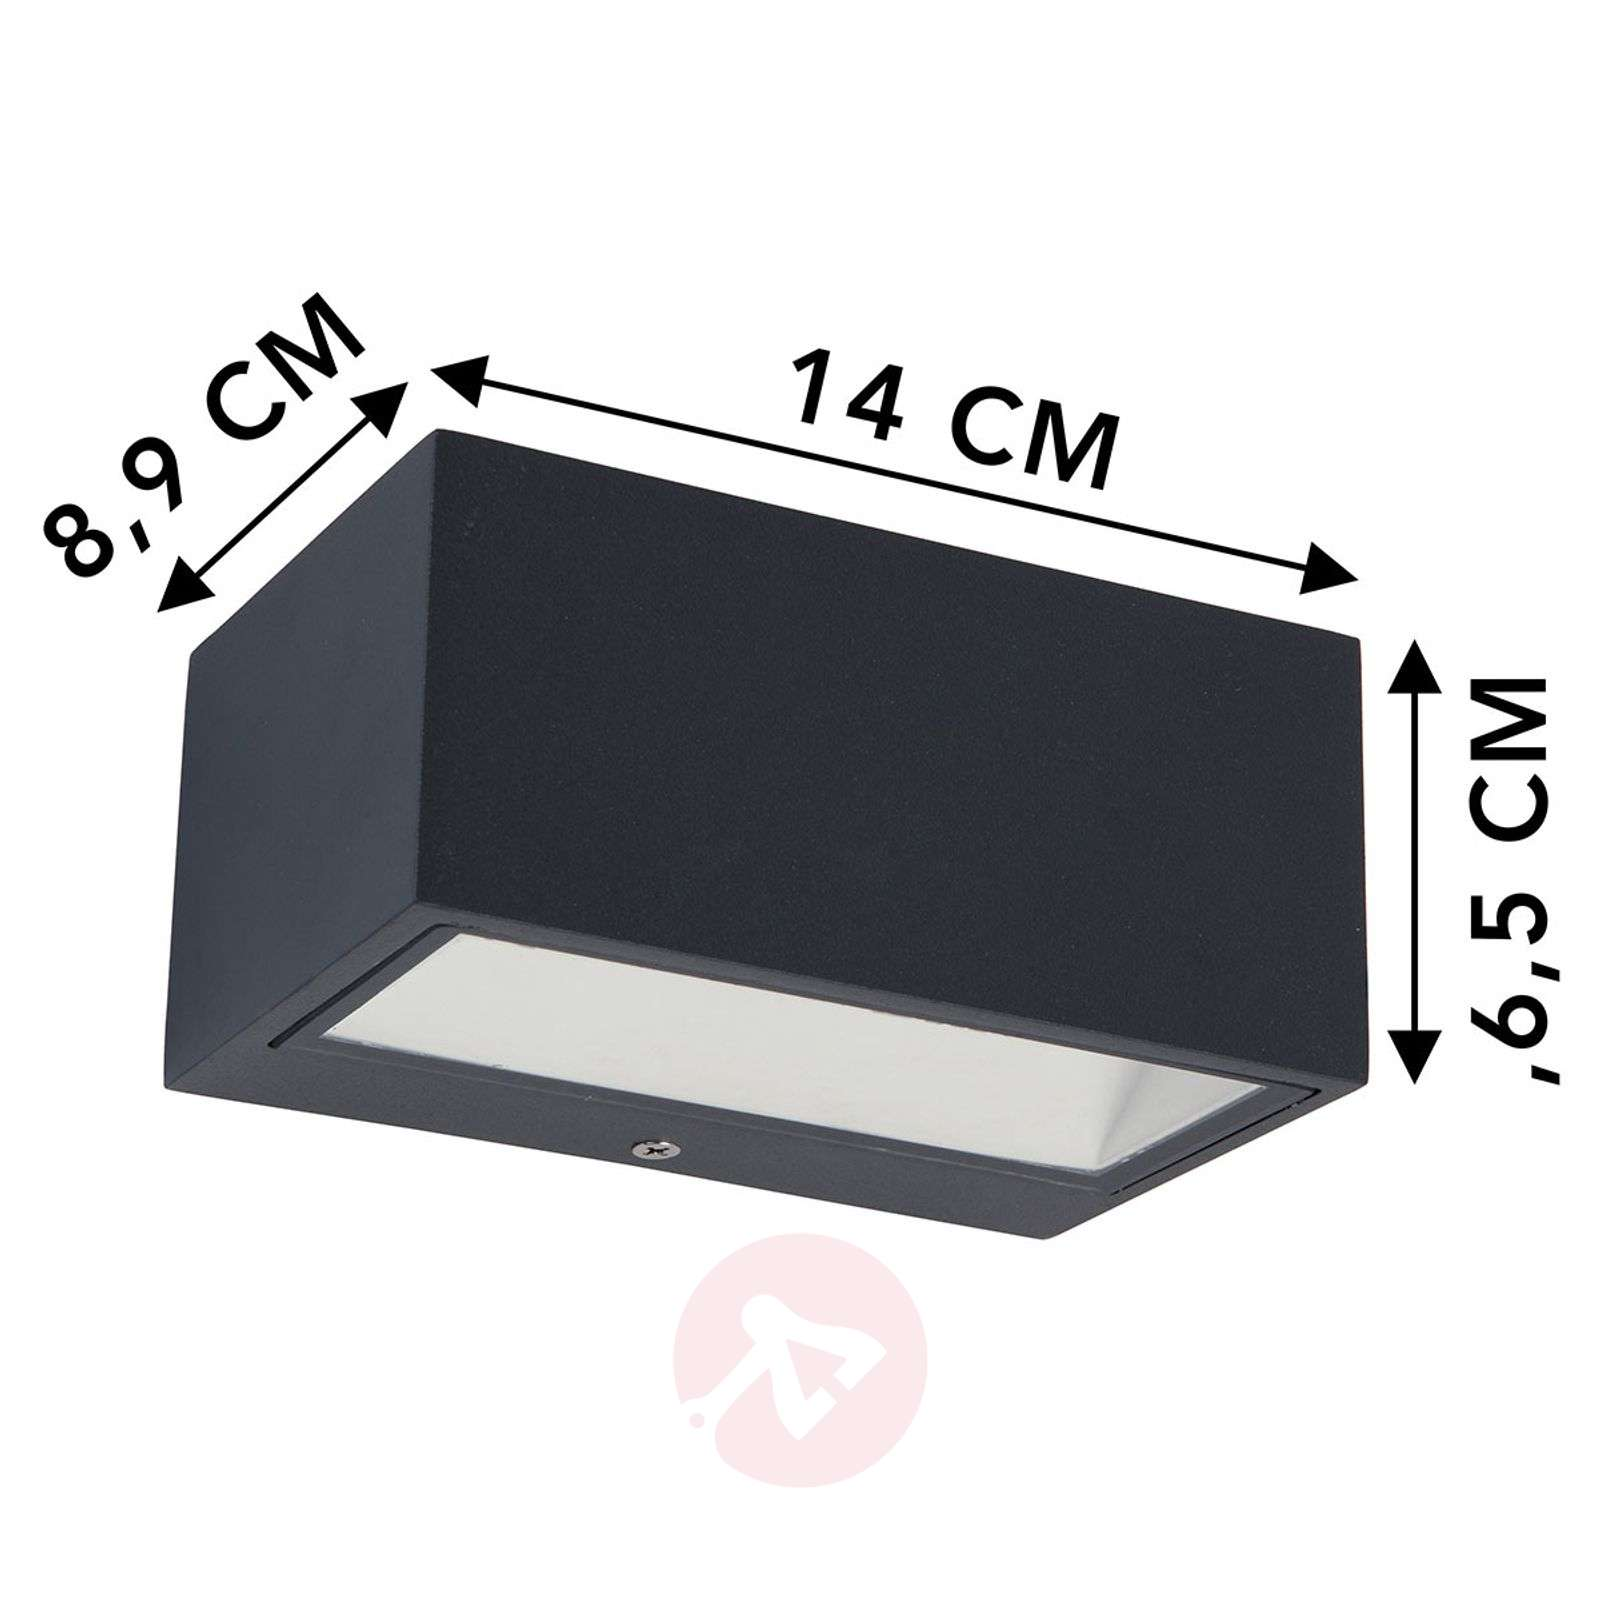 Applique da esterni LED Nomra IP54-3006208-03